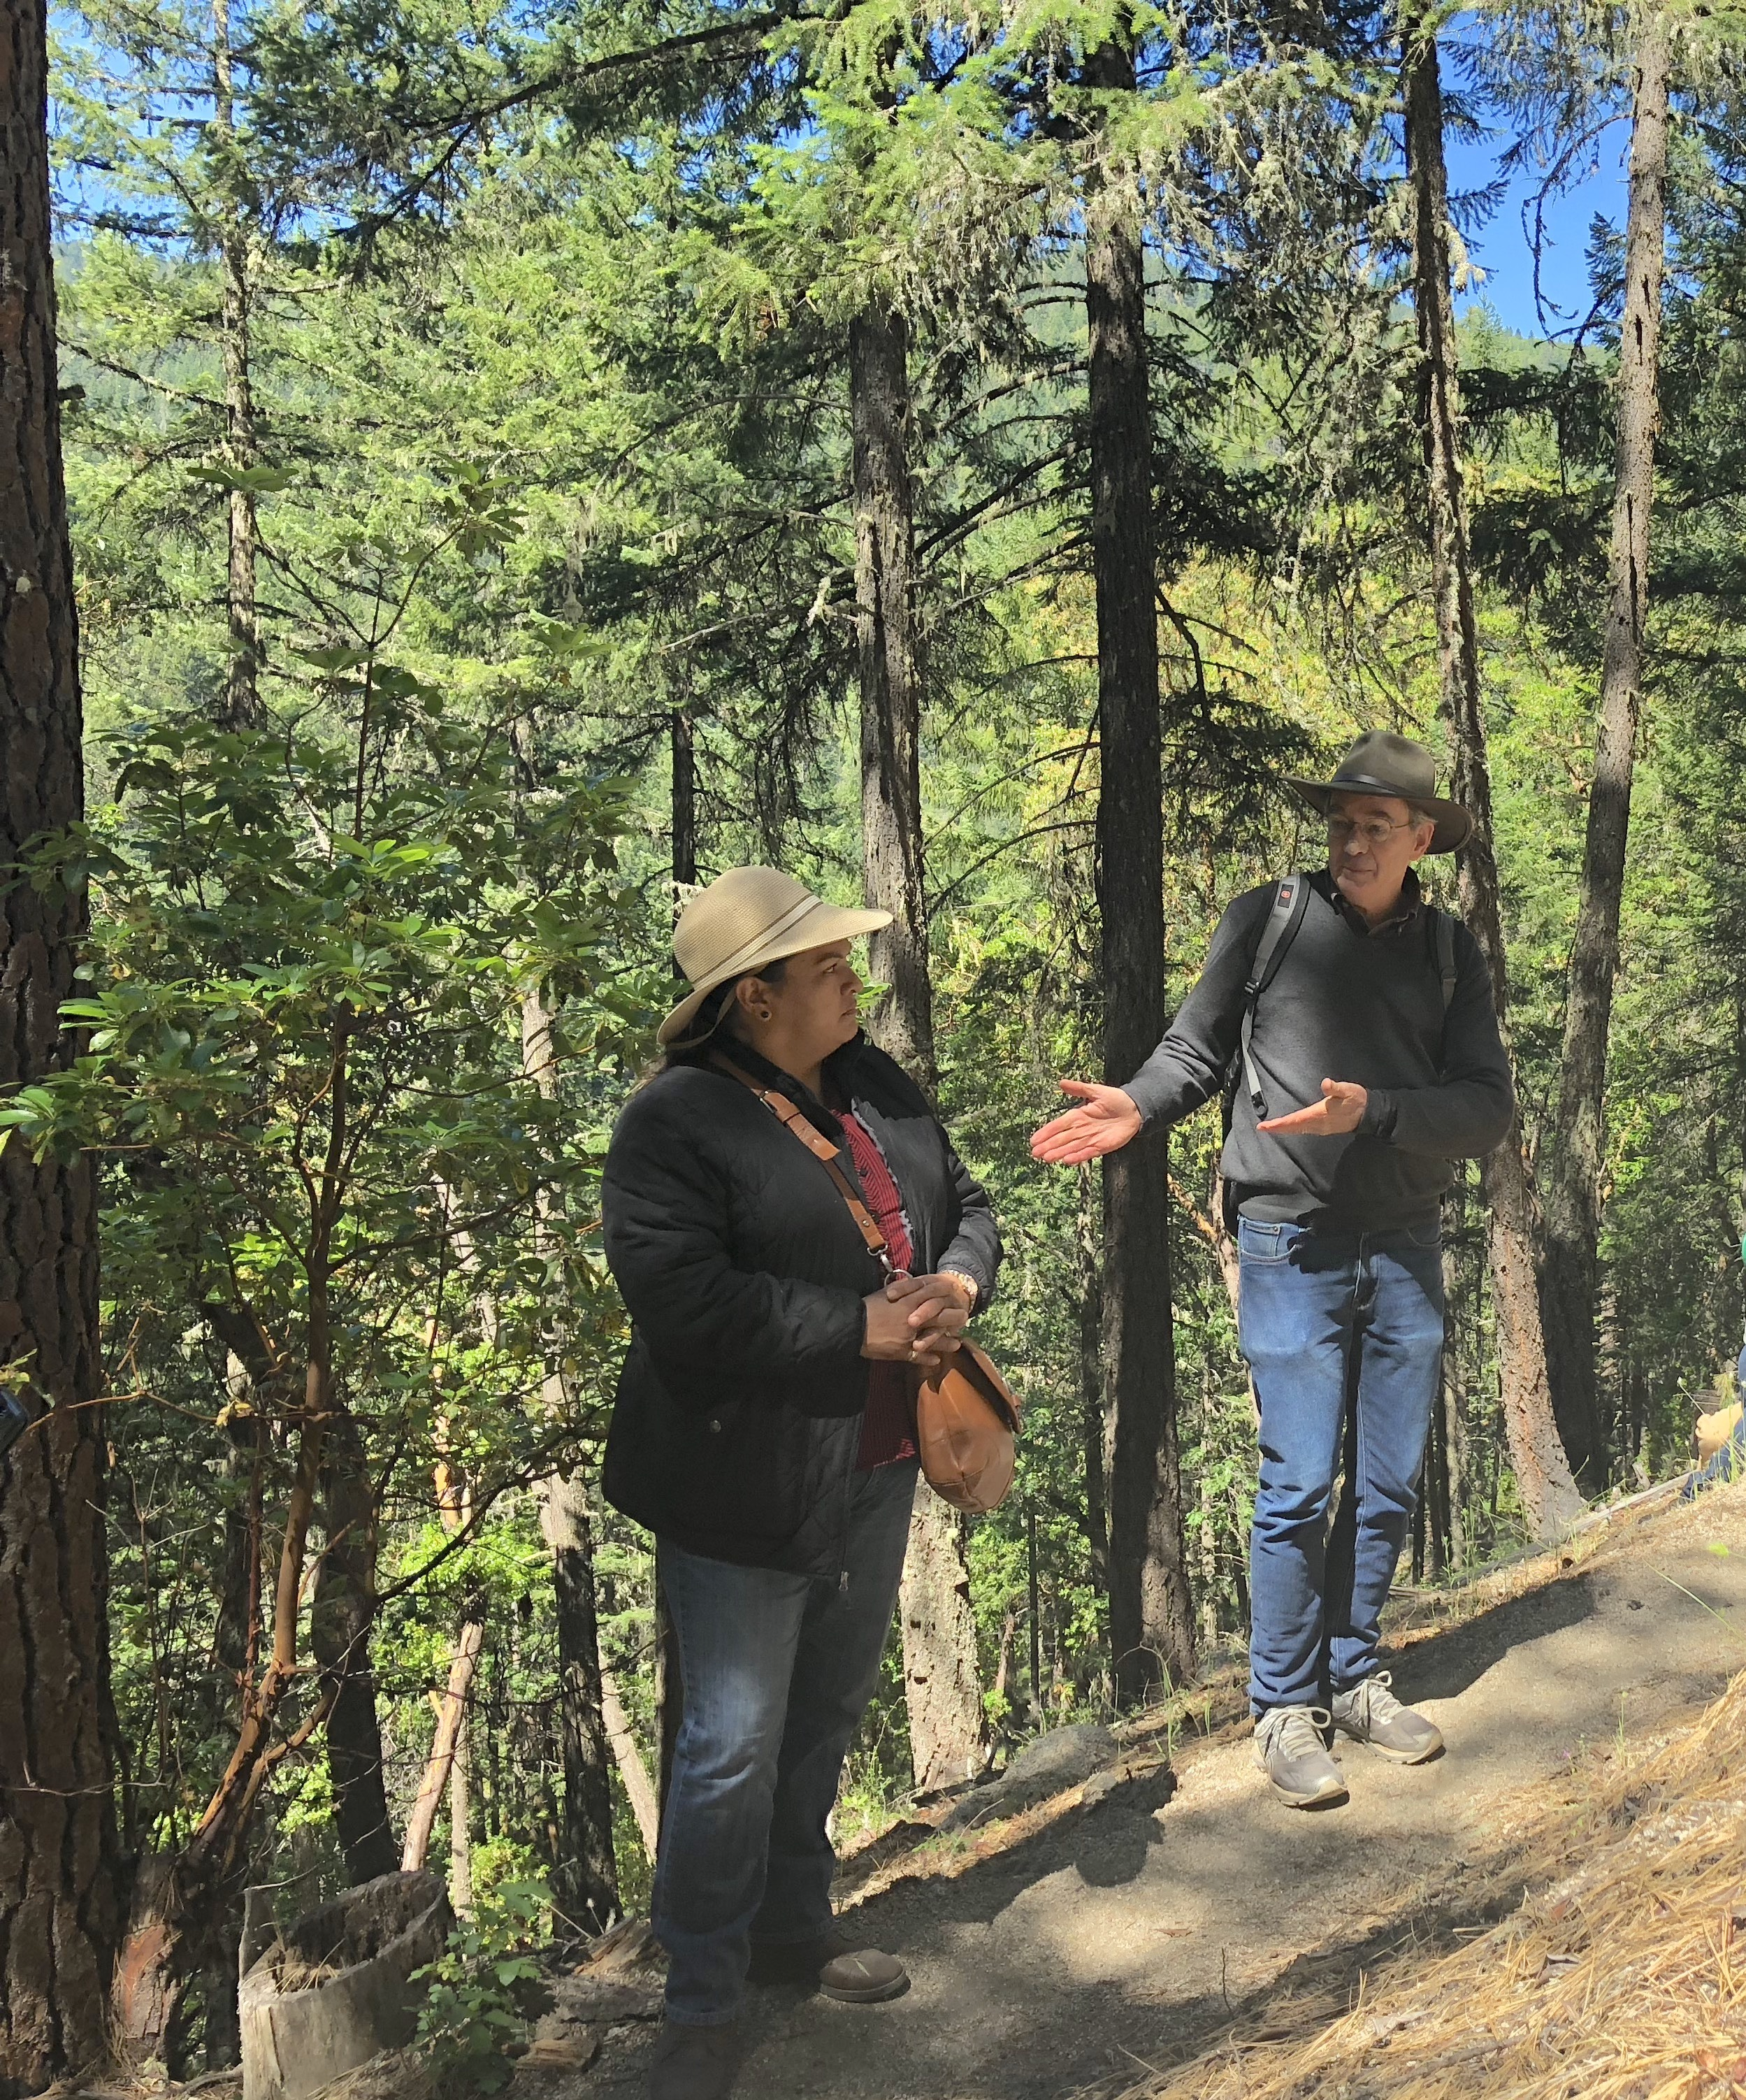 Carl Wilmsen and Martha Valle Hernandez from the Northwest Forest Worker Center.